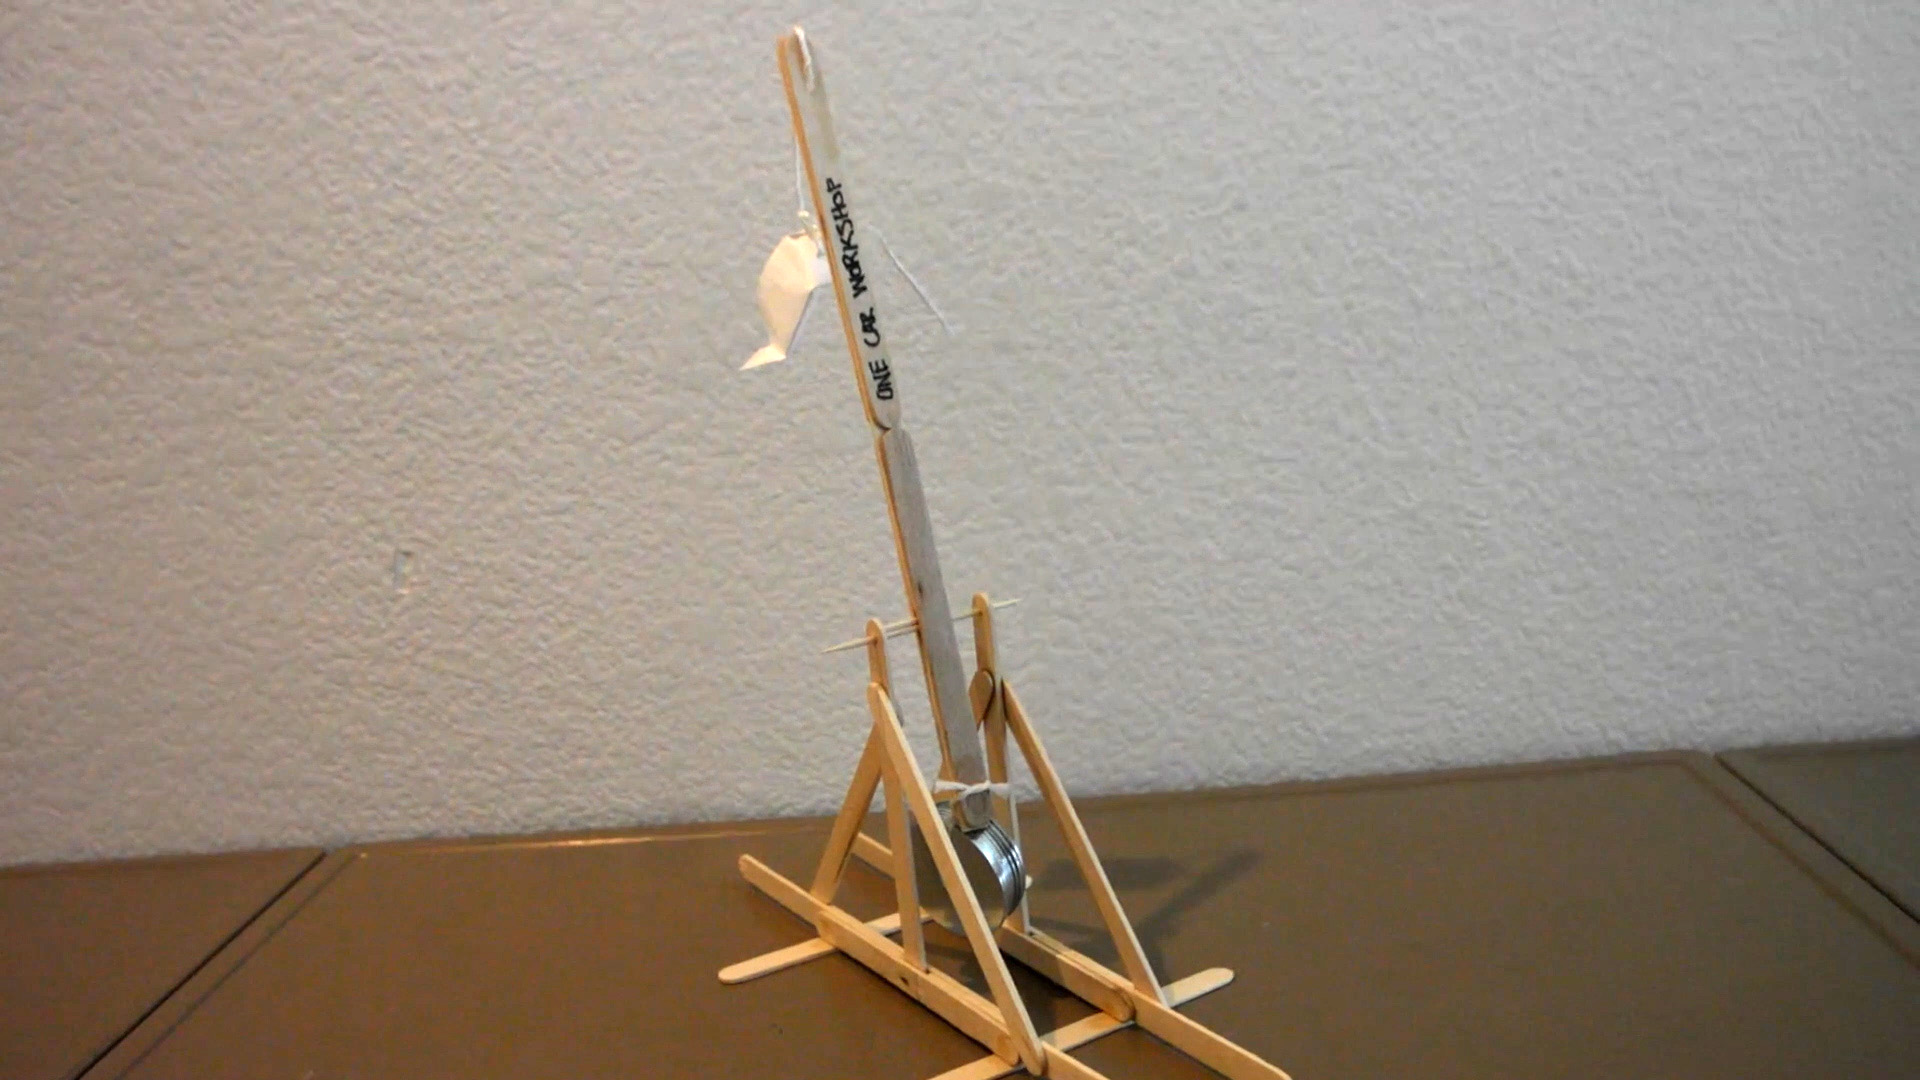 Weekend Watch: Build a Simple Trebuchet from Household Items